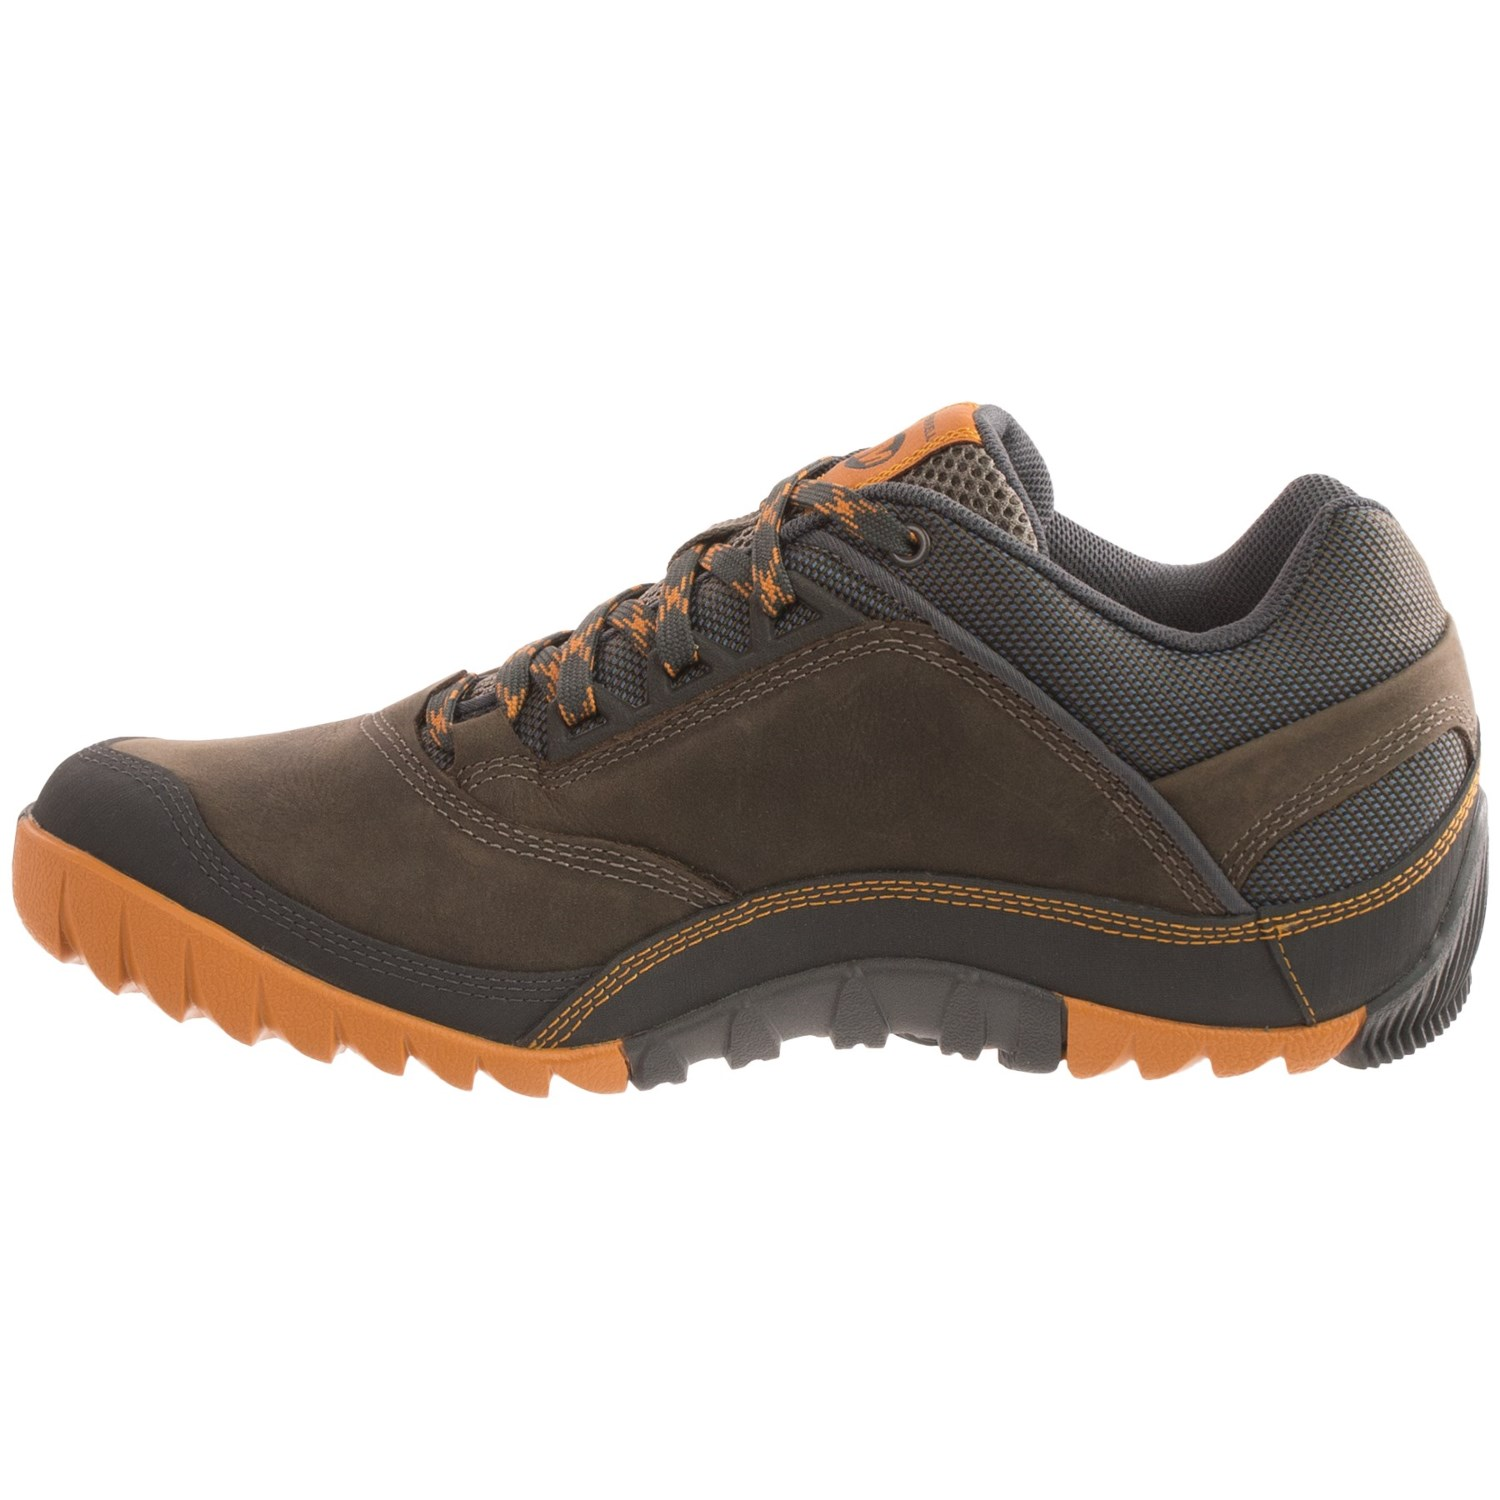 Merrell Annex Shoes For Men 9472a Save 33